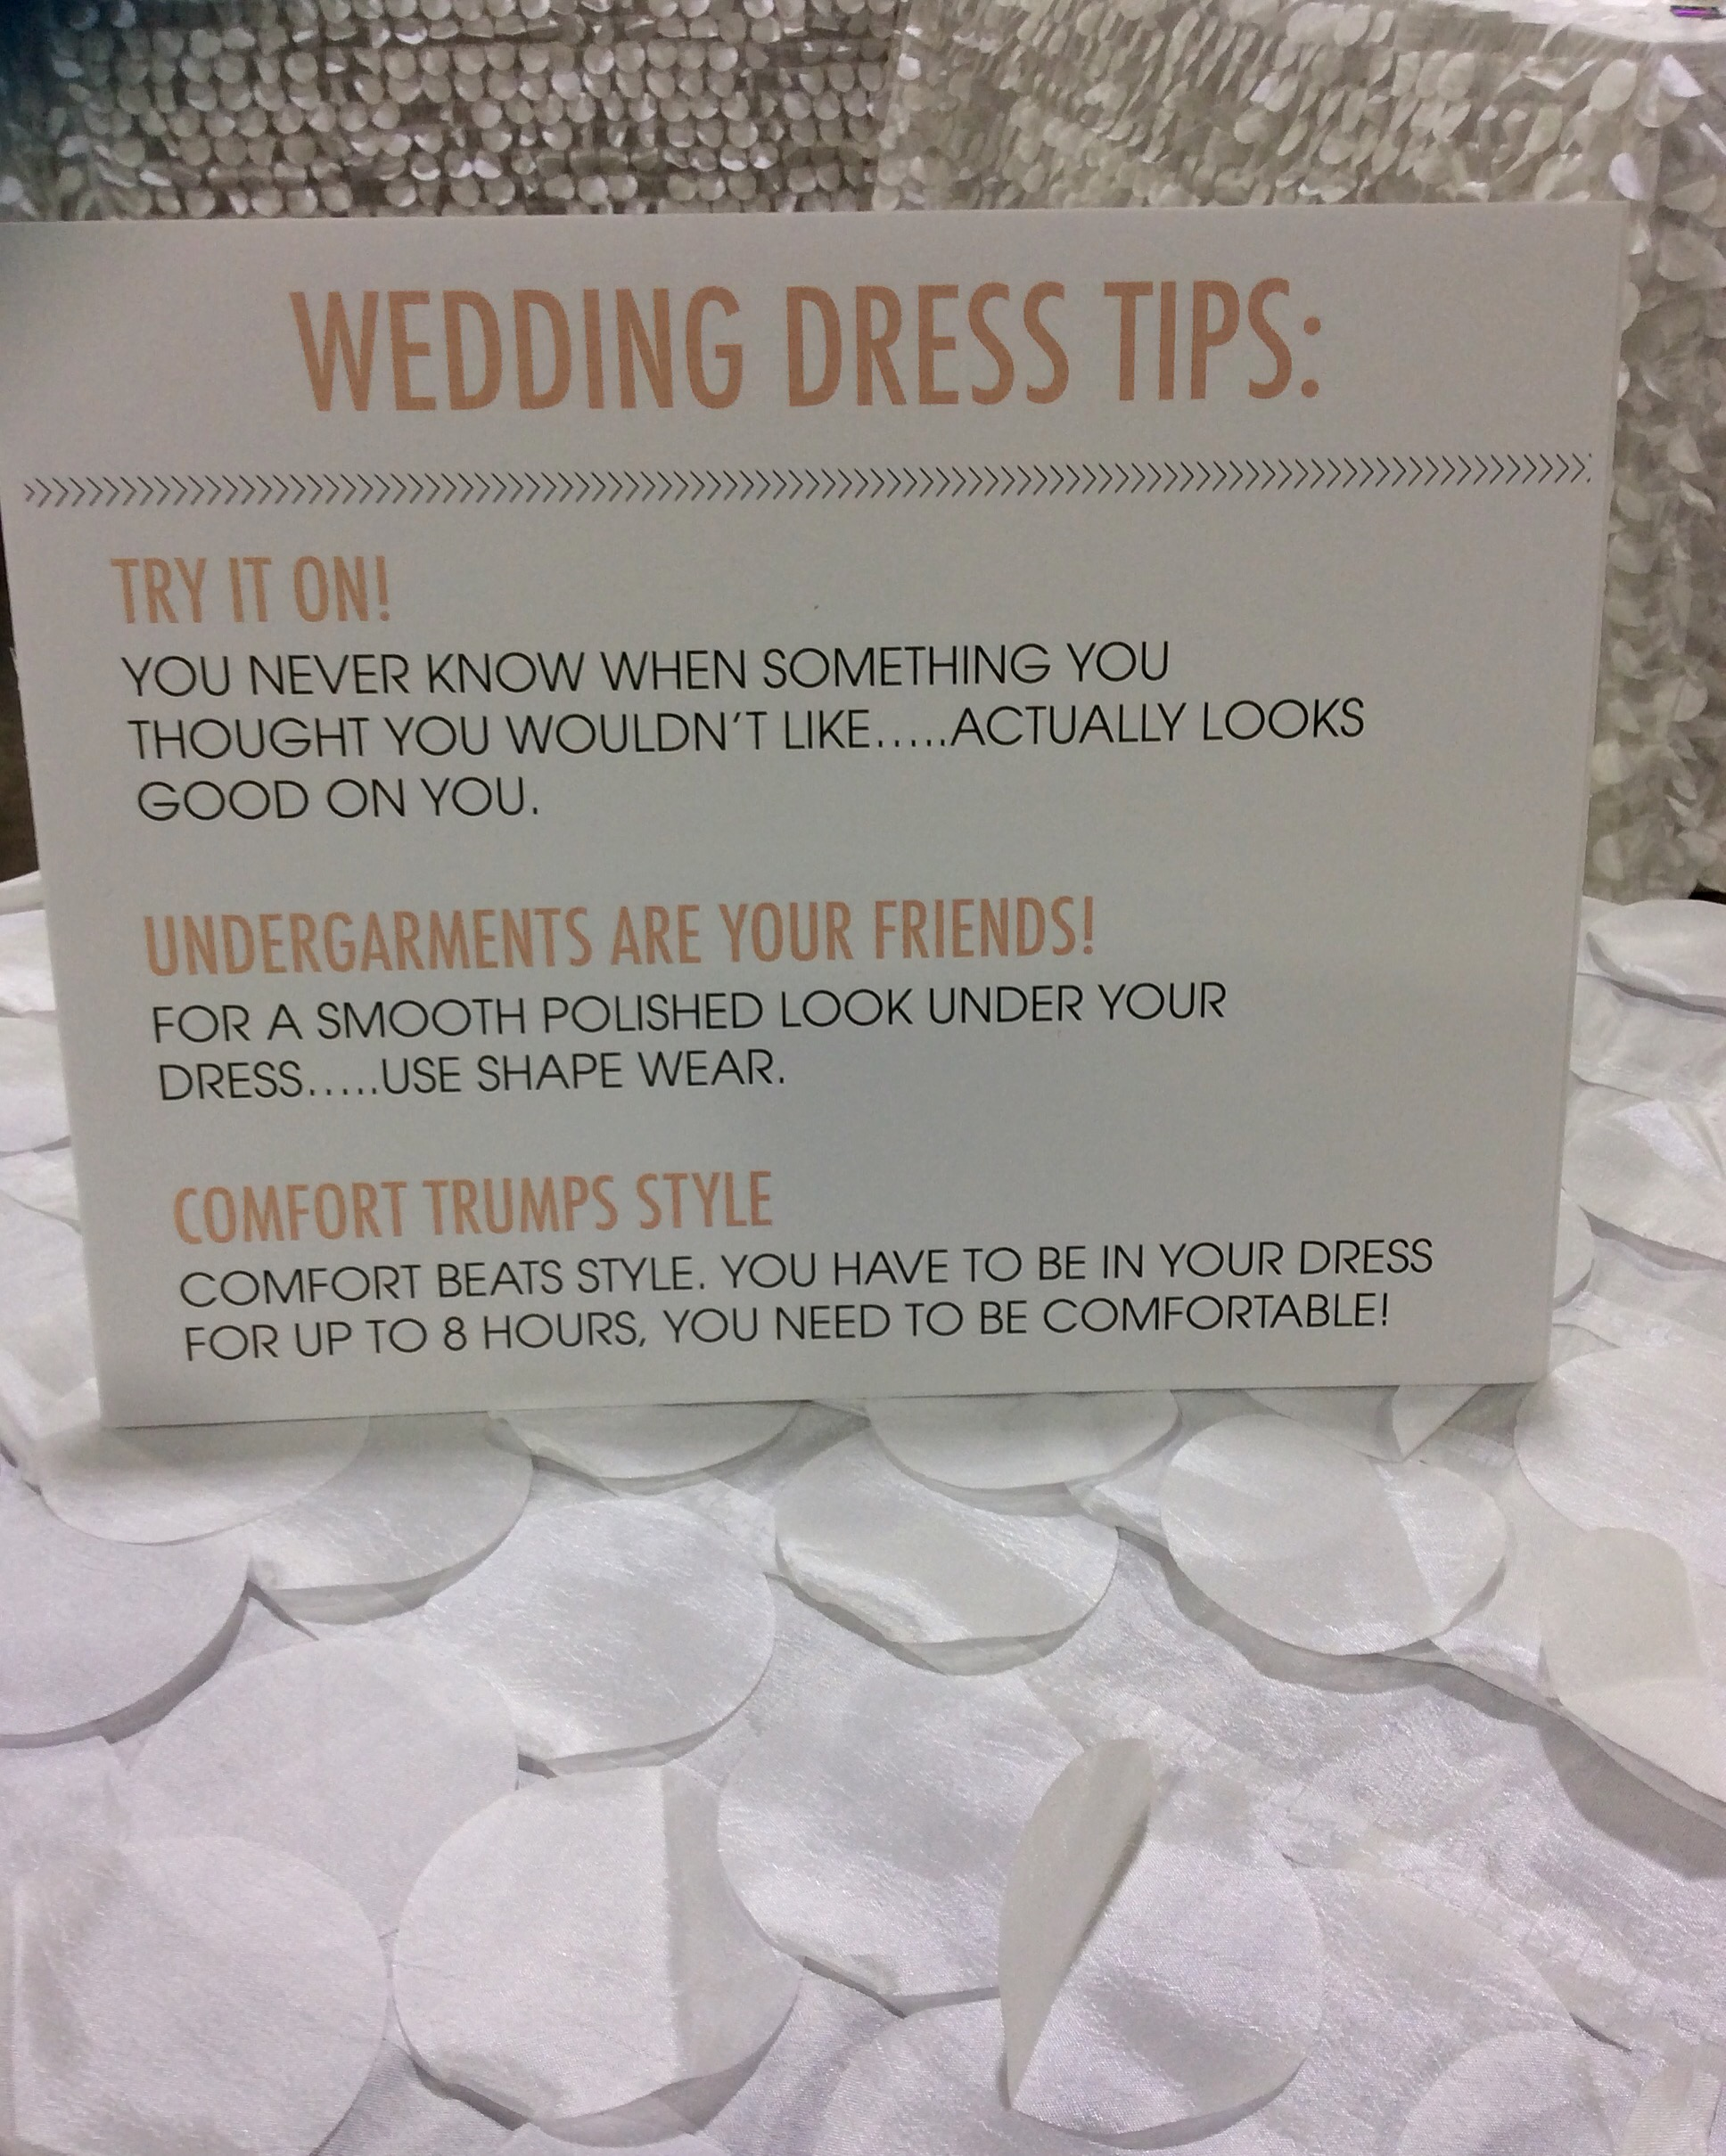 plus size bride, wedding dress tips, plus size wedding dress tips